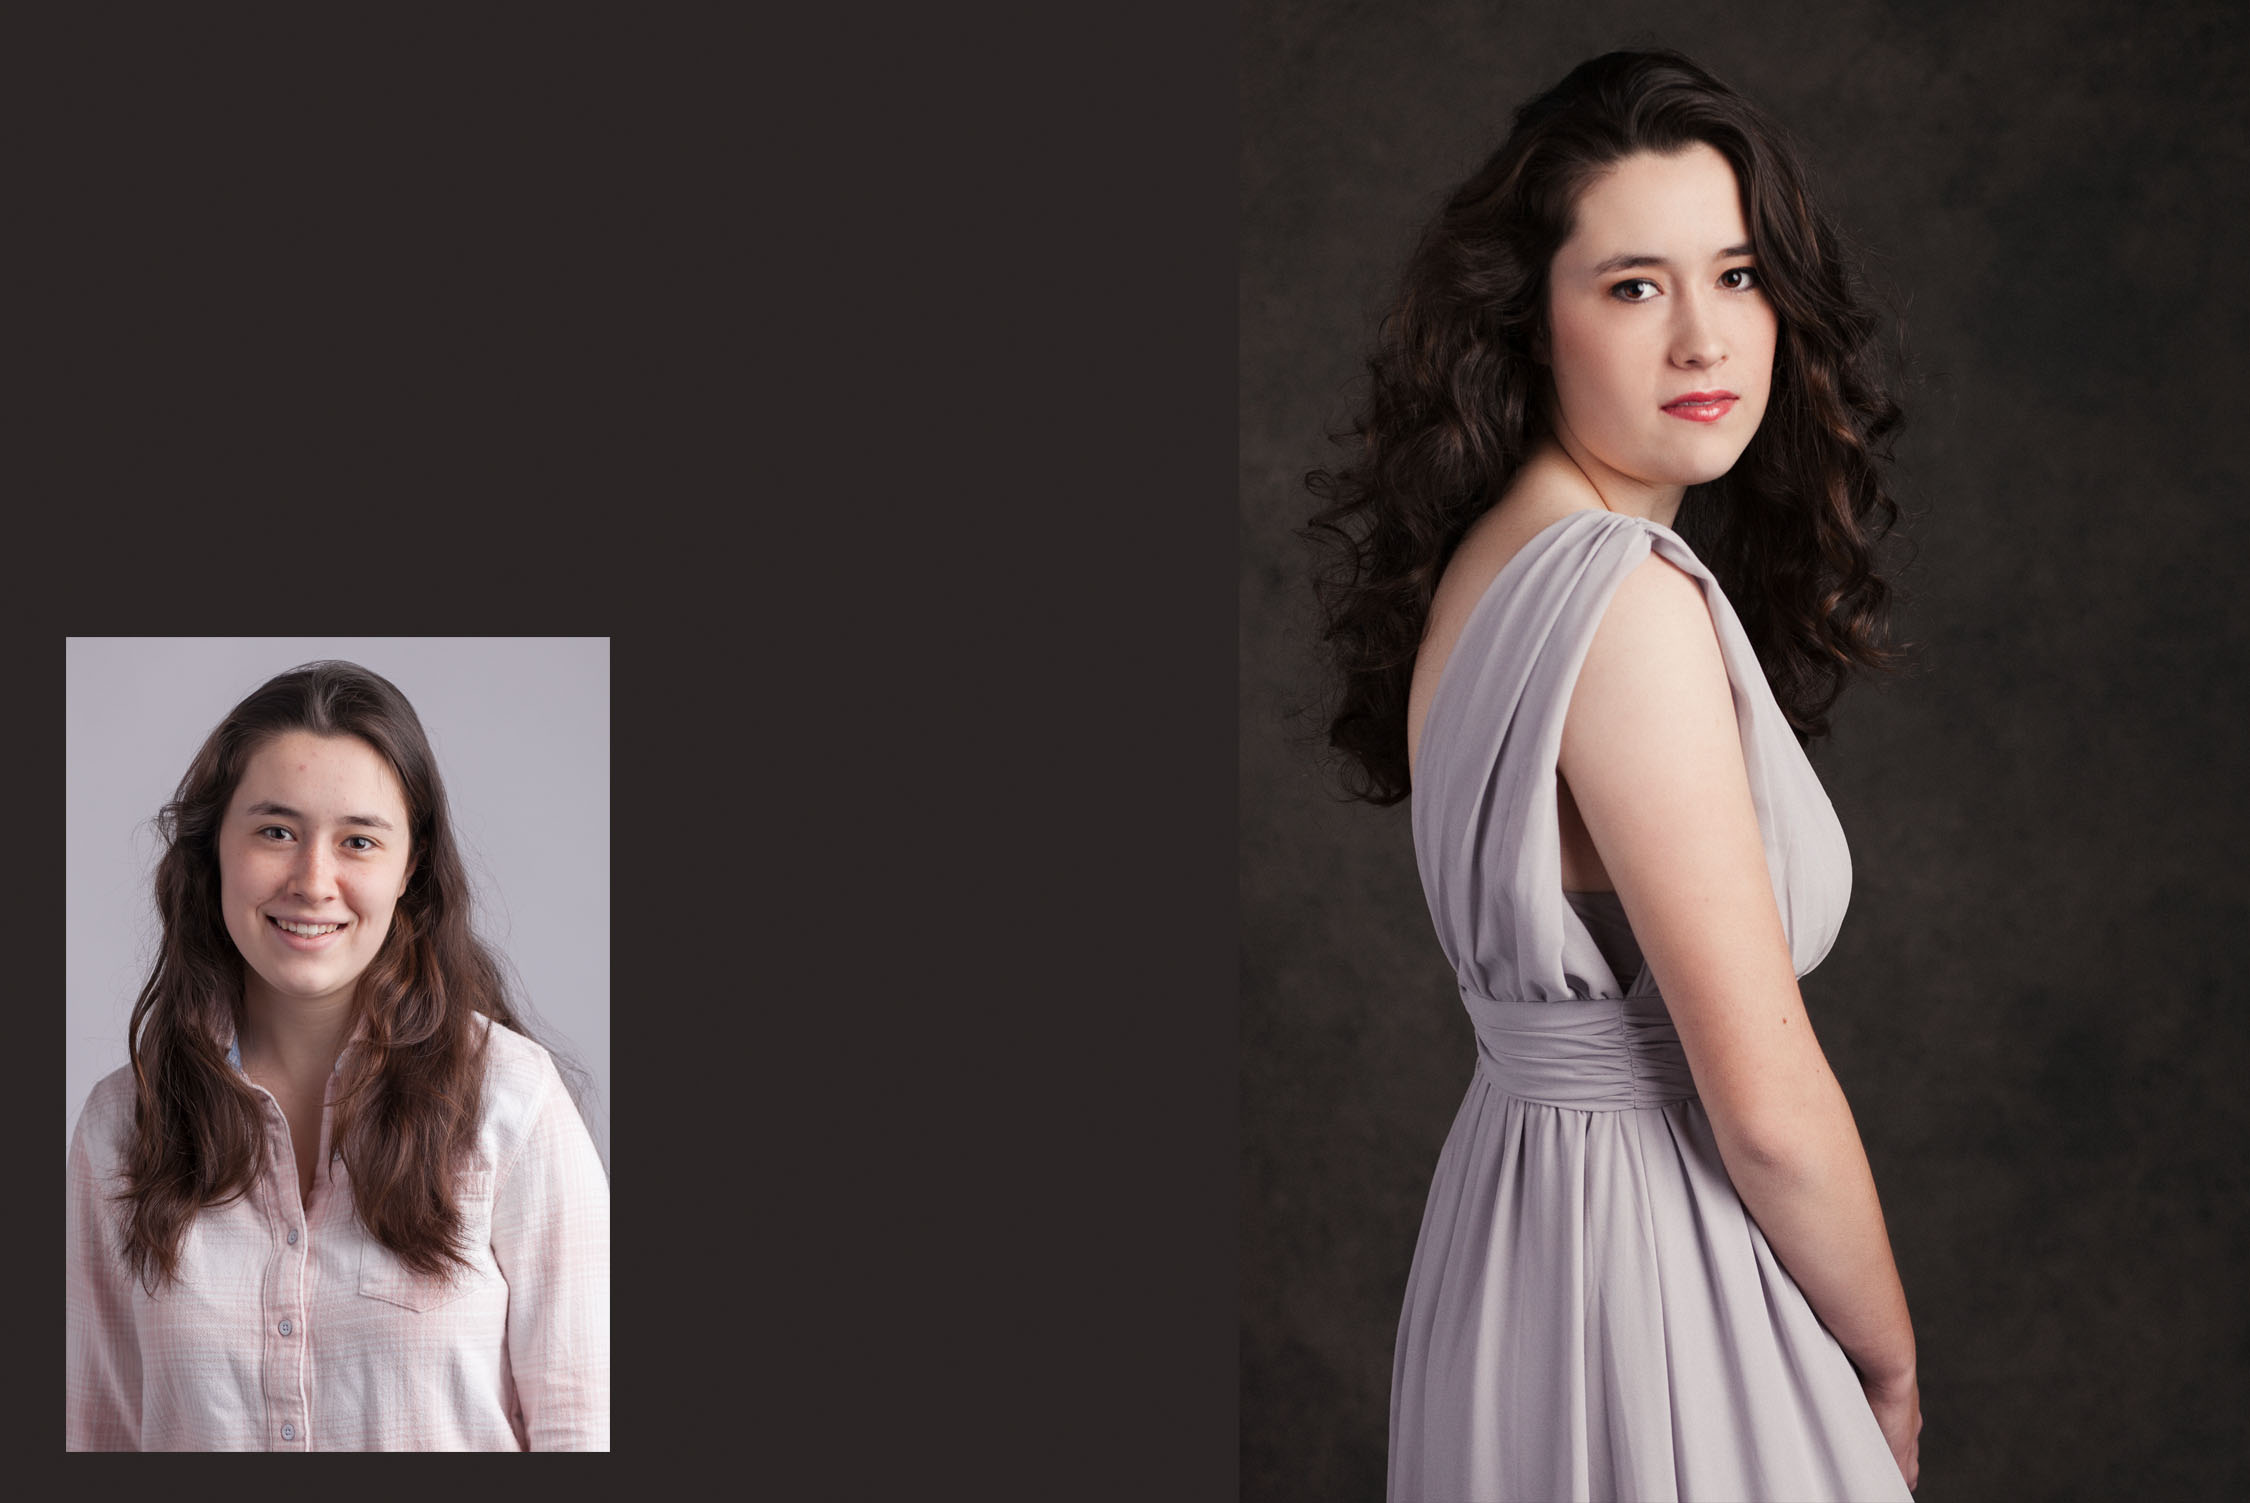 Transformation for female photos, before and after makeup, hair. posing and lighting by glamour photographer Alice Pepplow